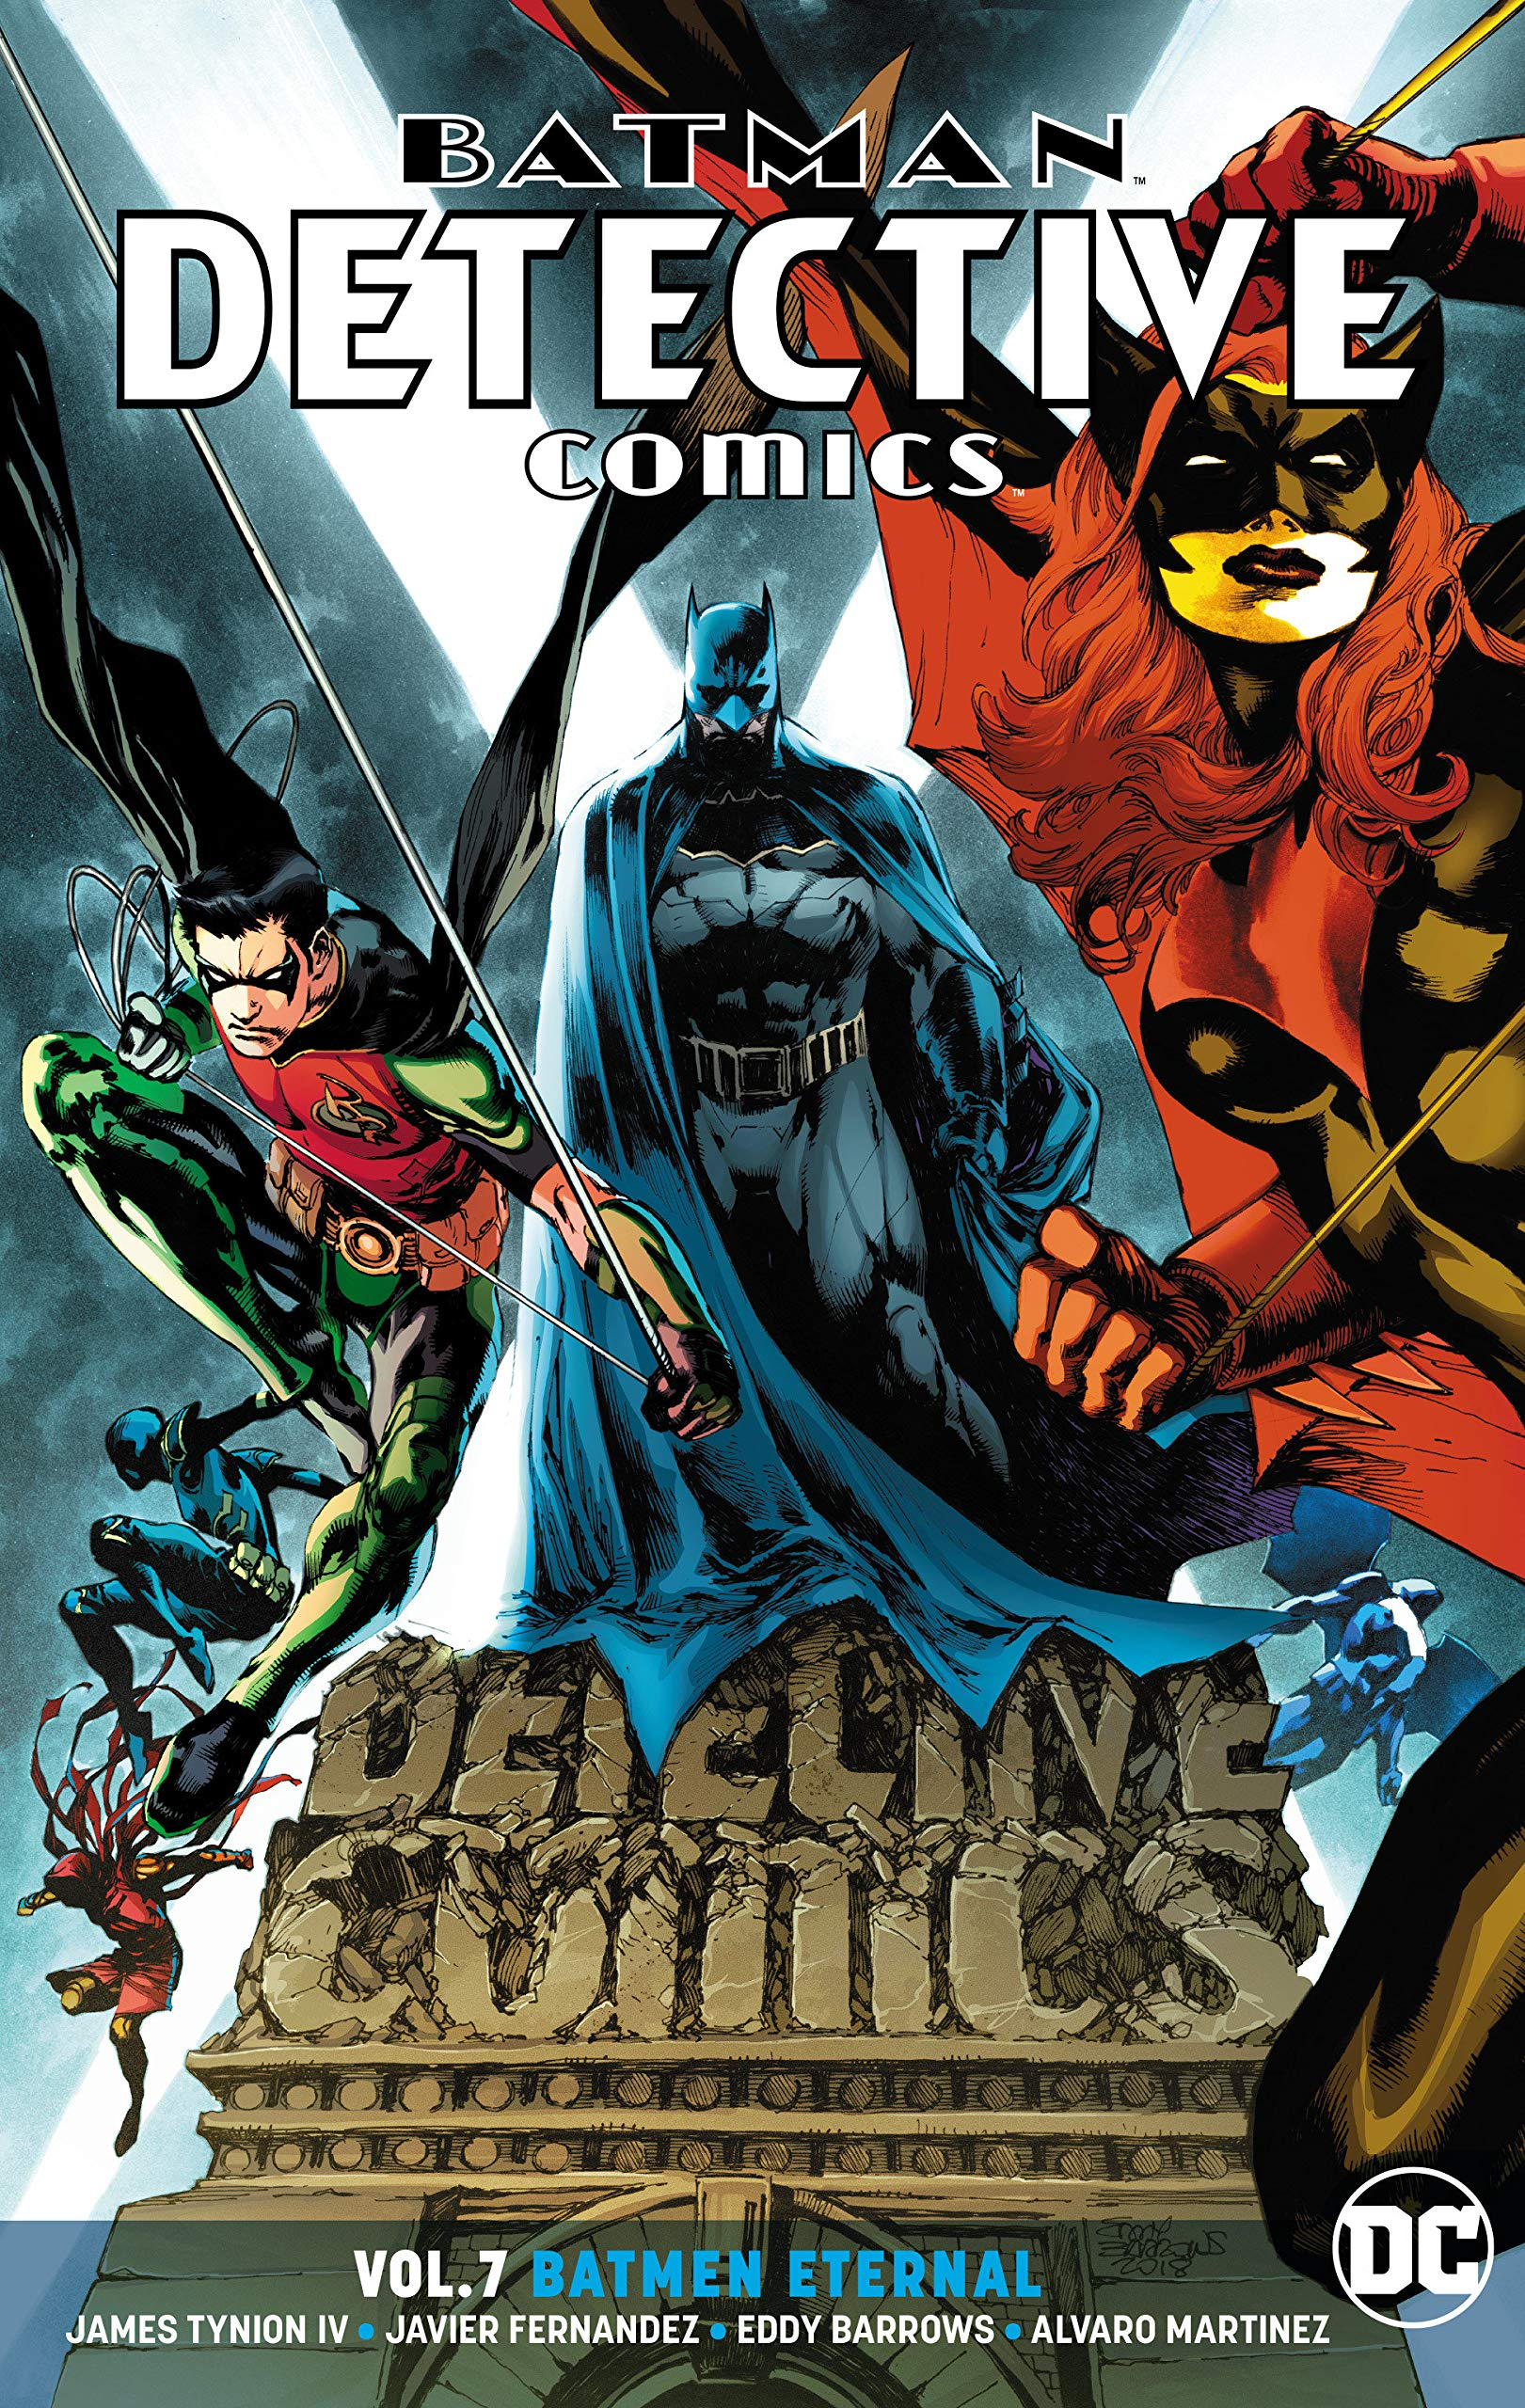 Image result for Batman Detective Comics Vol. 7 Batman Eternal